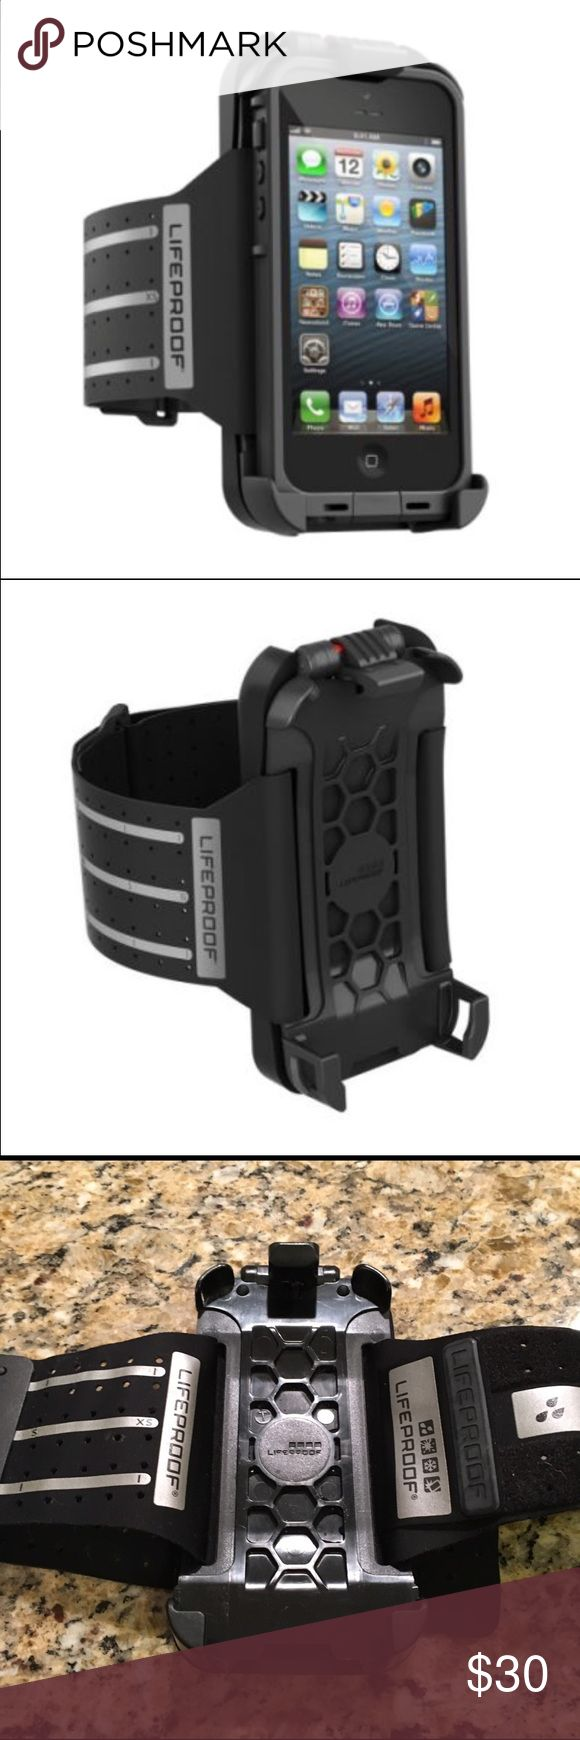 LIFEPROOF iPhone 5 Armband Only used once. For iPhone 5. Great for running or working out! LifeProof Accessories Phone Cases